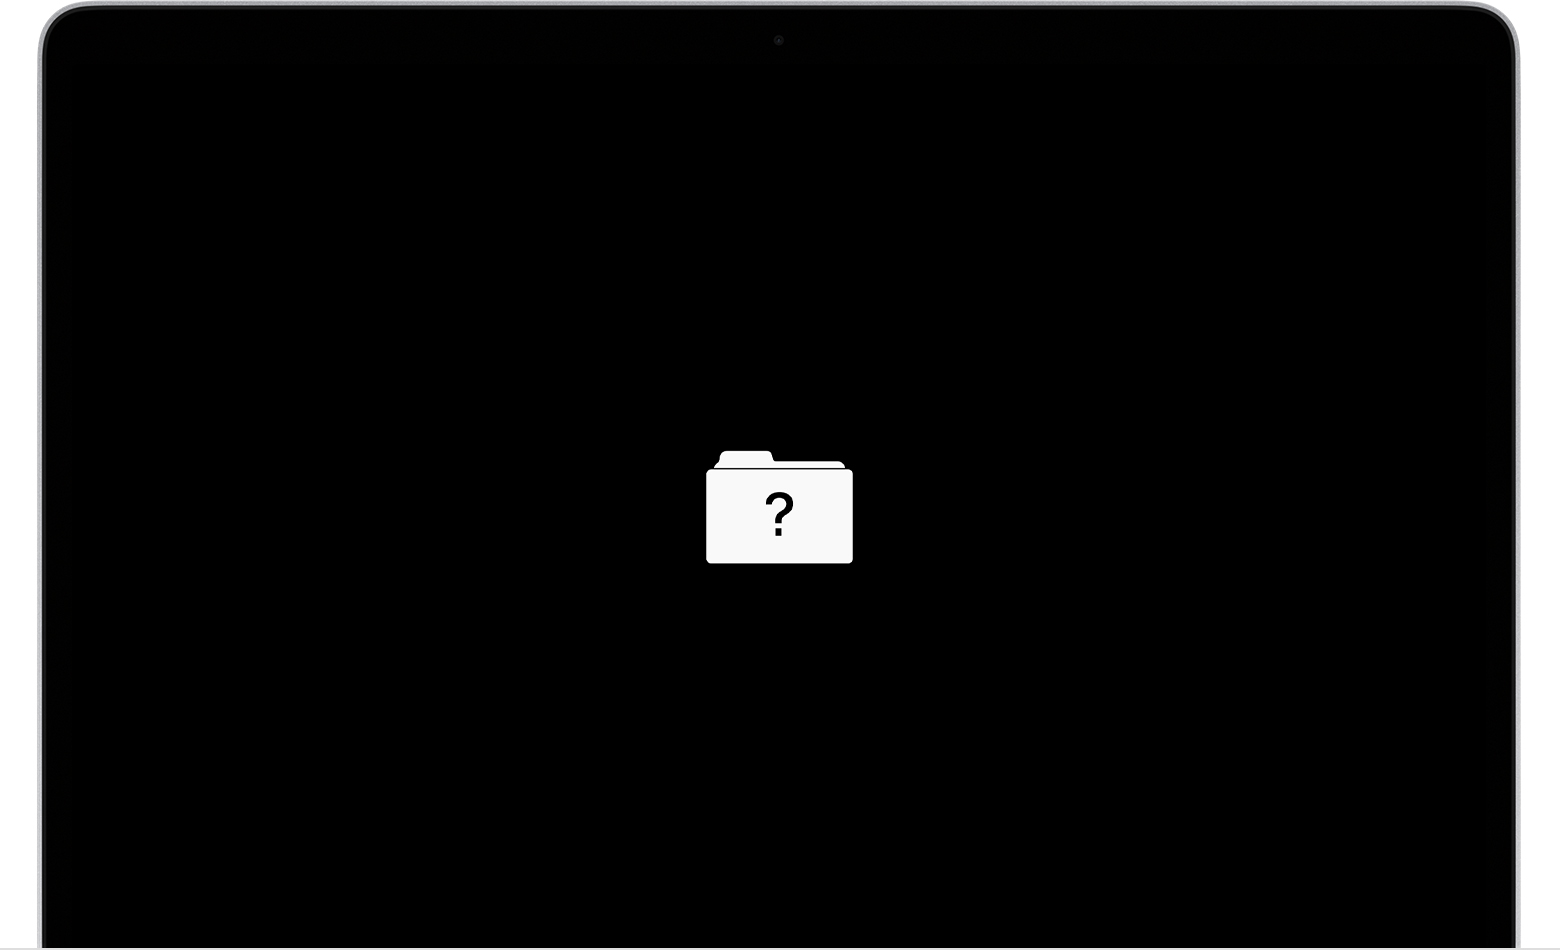 Black screen with question mark folder